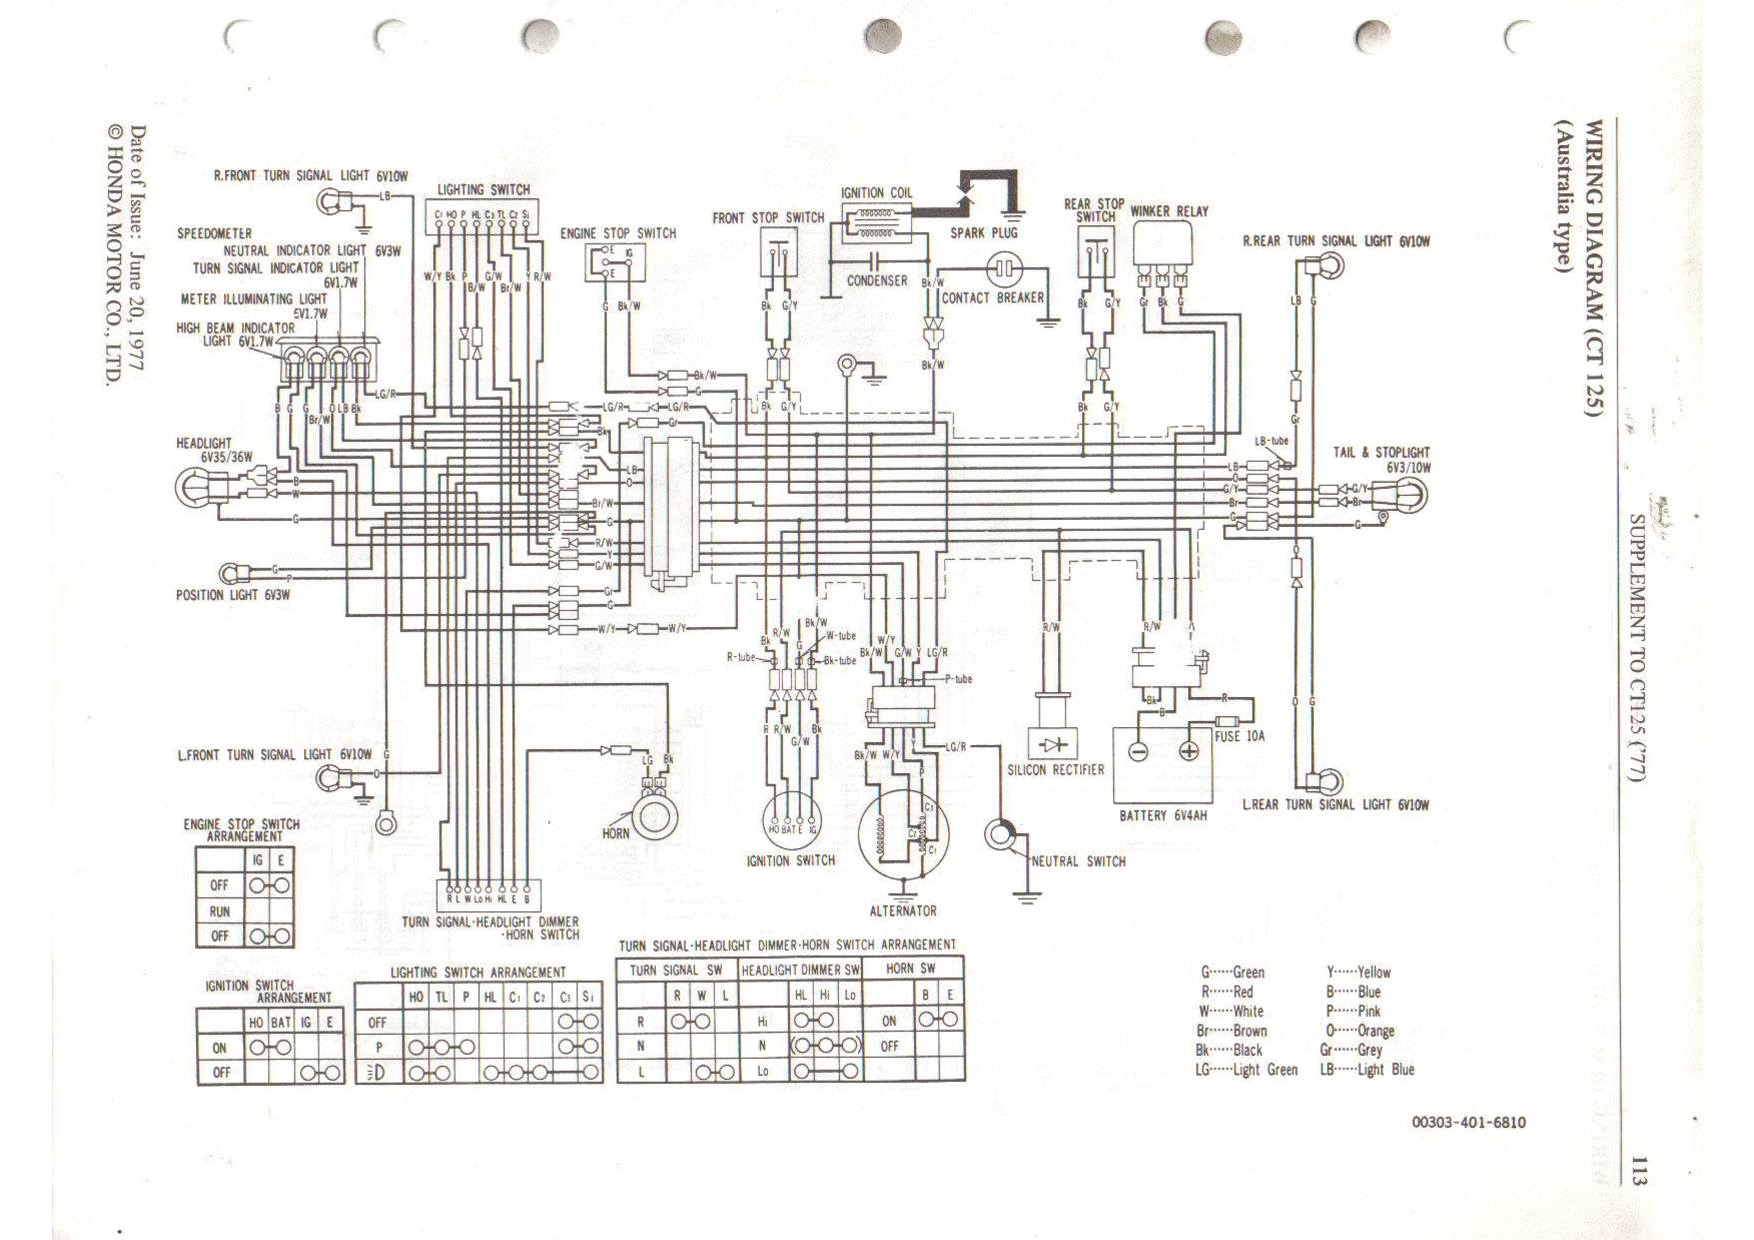 1977 Ford Tractor Wiring Diagram Great Design Of Truck Ignition Honda Ct90 Battery Get Free Image Diagrams F